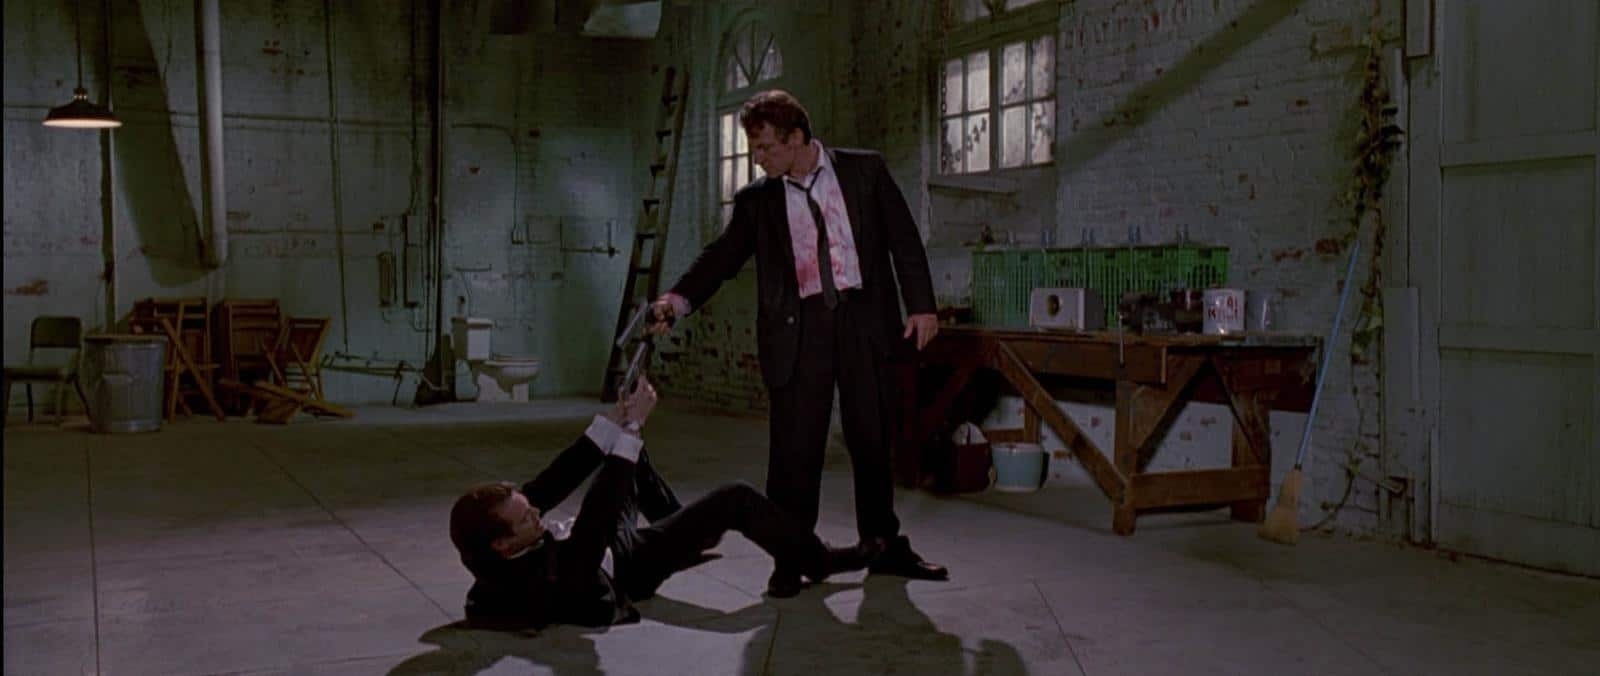 [Film culte] Reservoir Dogs – Critique